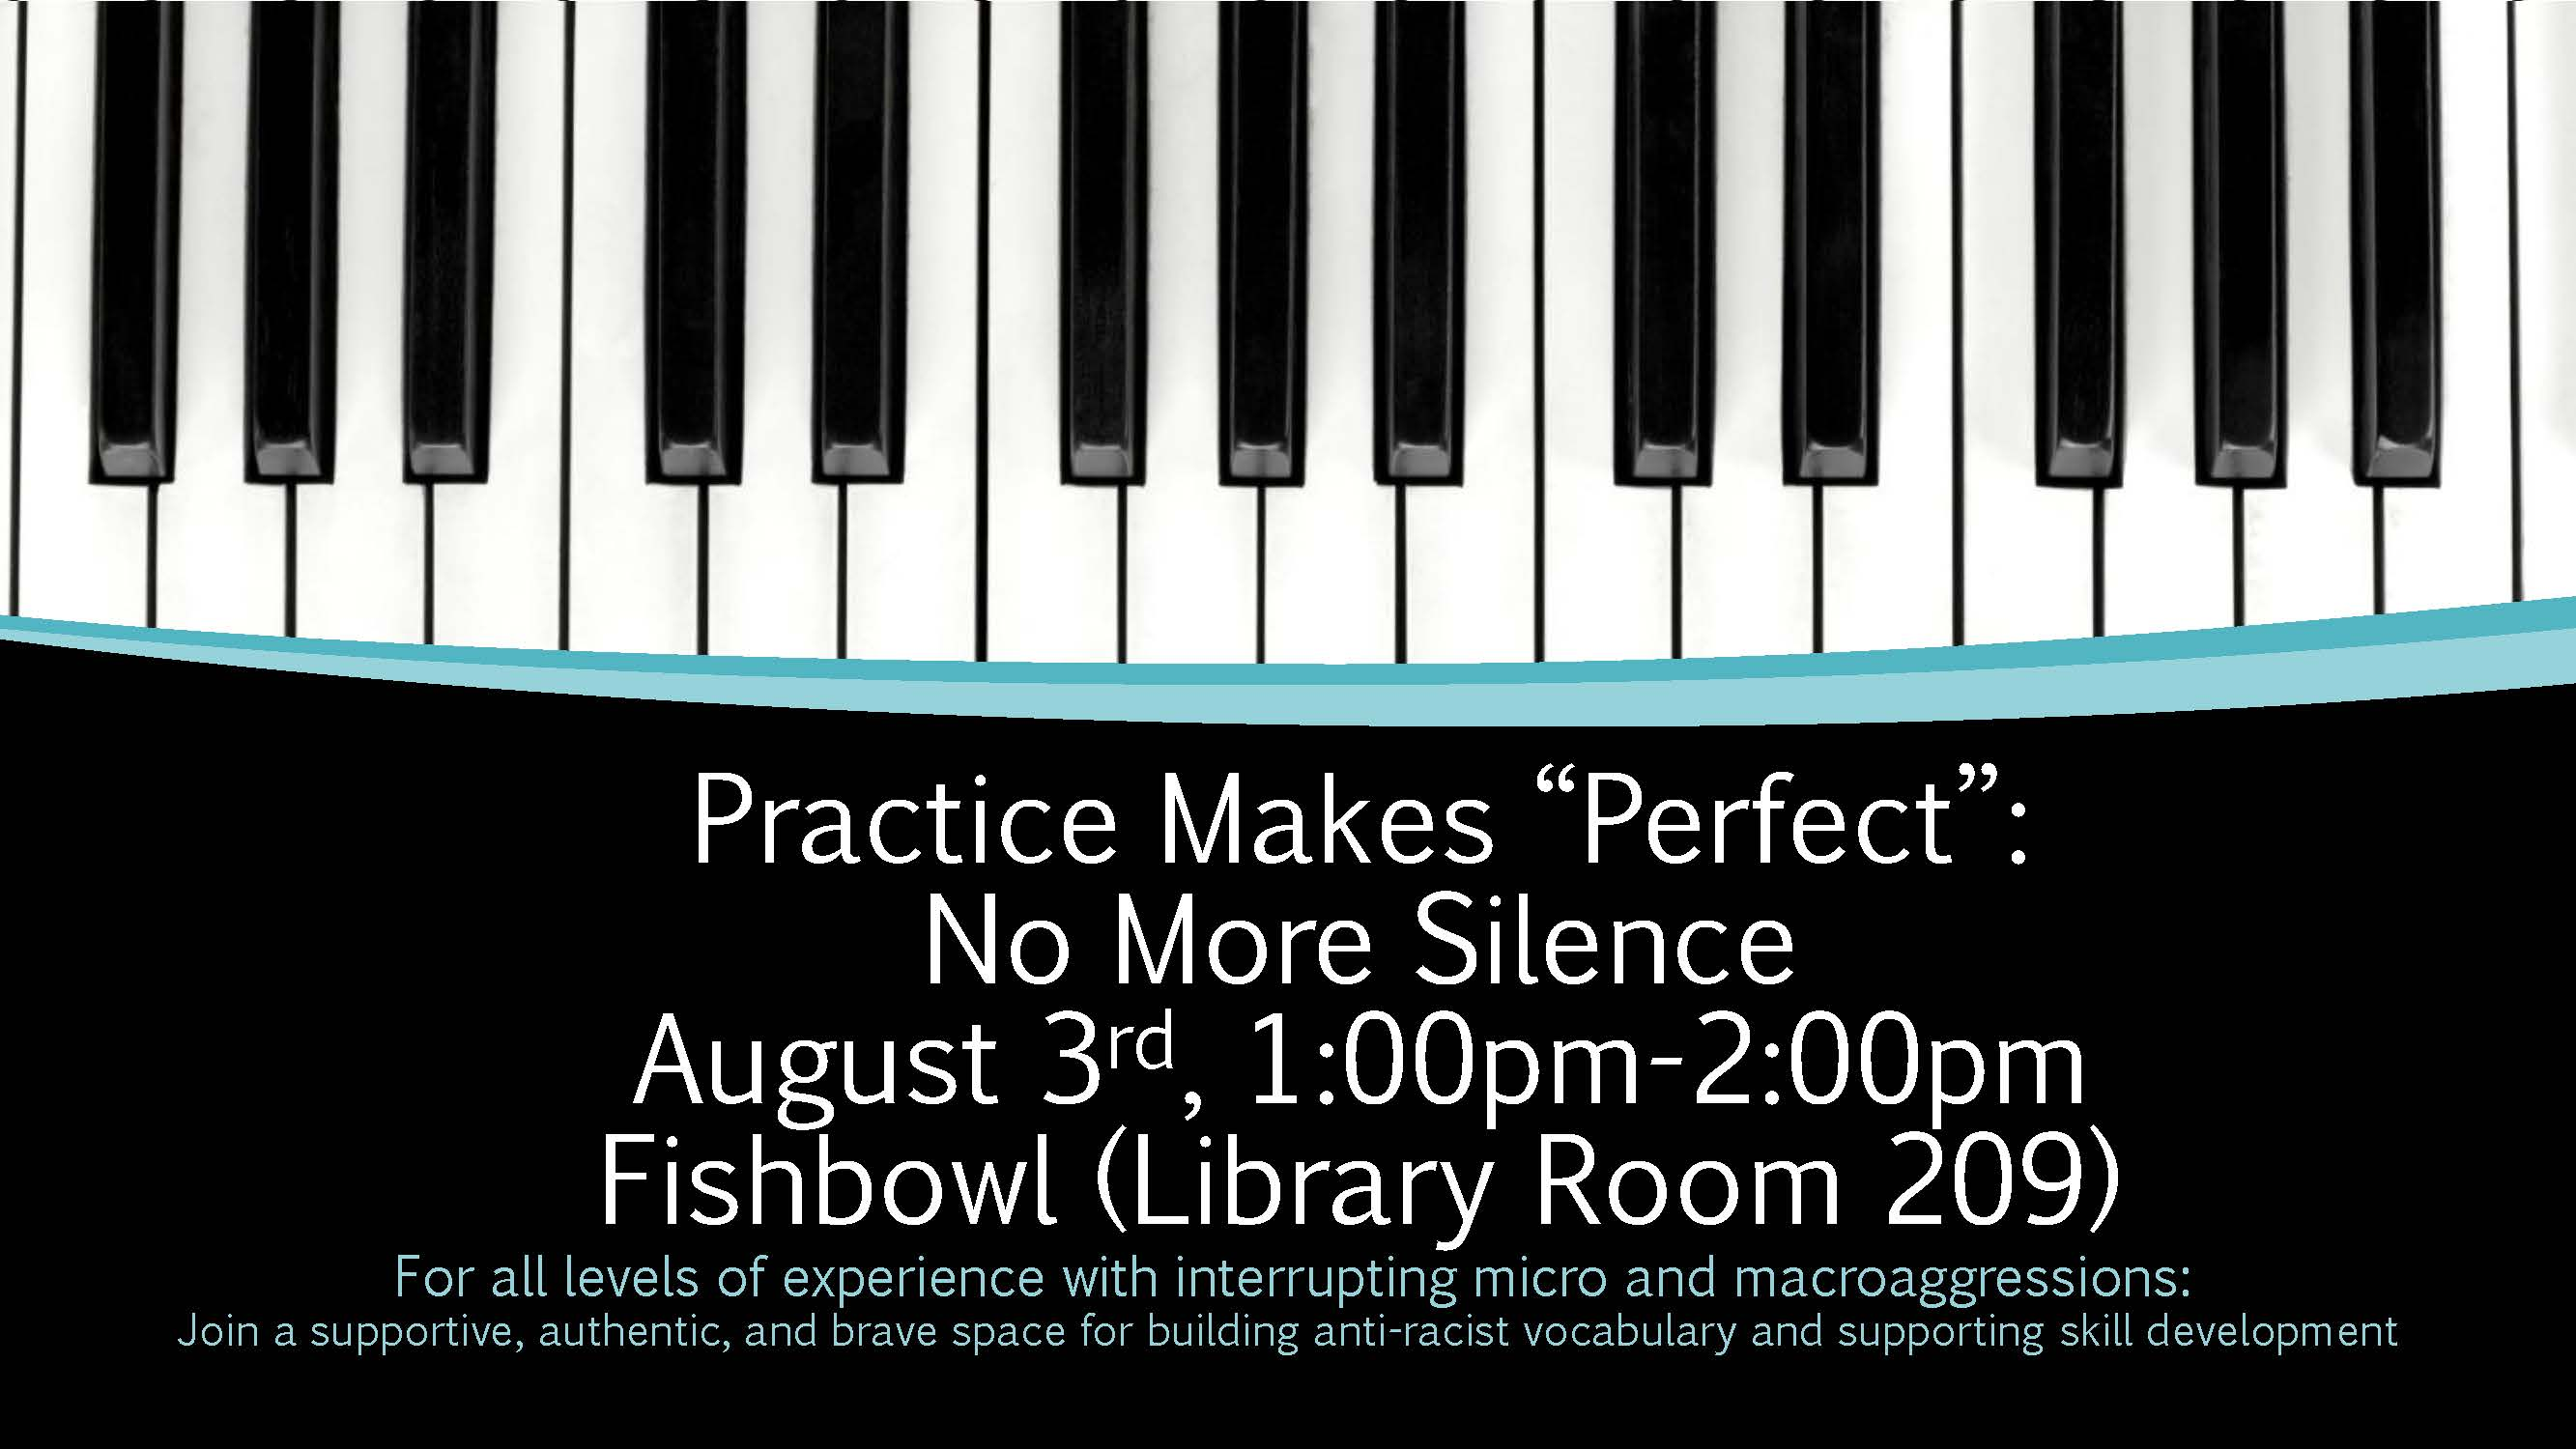 Practice Makes Perfect; No More Silence